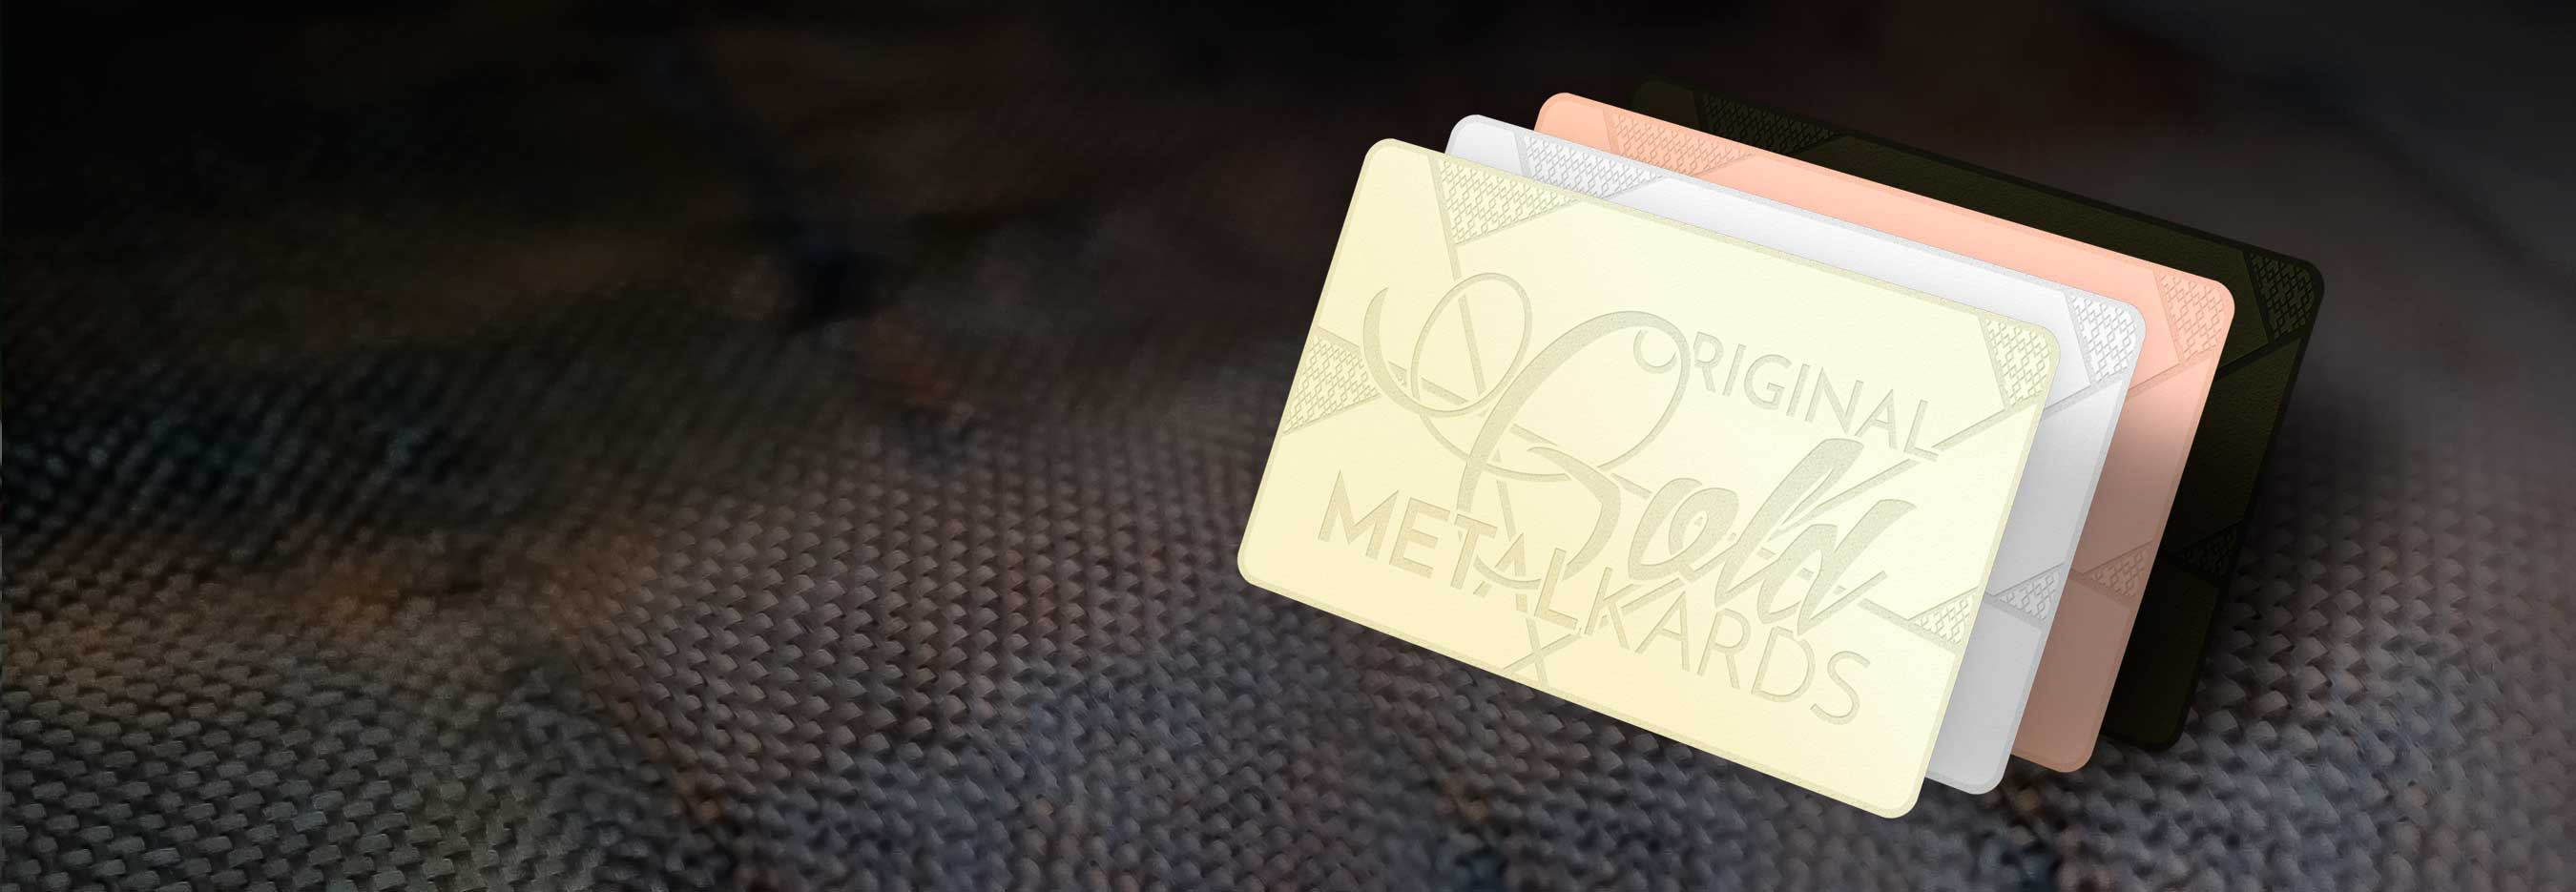 Metal Business Cards in Stainless Steel